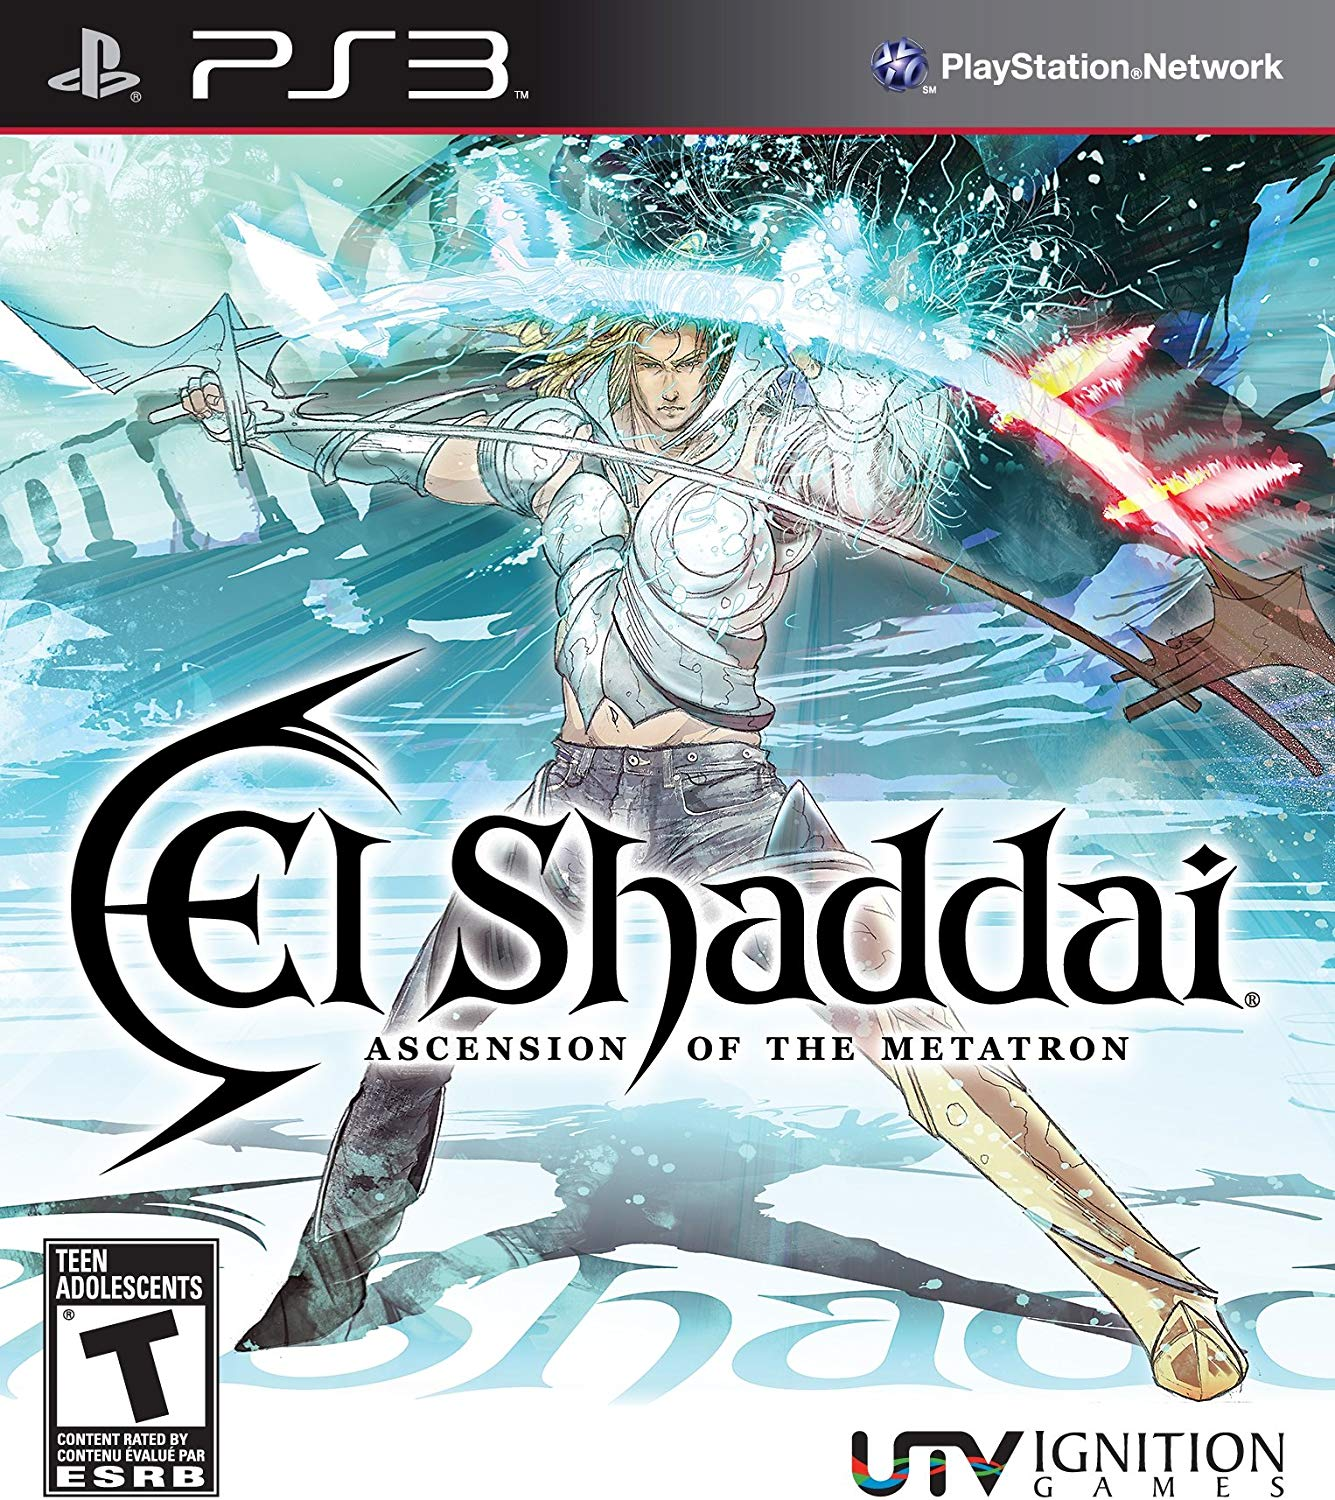 El Shaddai Ascension of the Metatron - PlayStation 3 Játékok